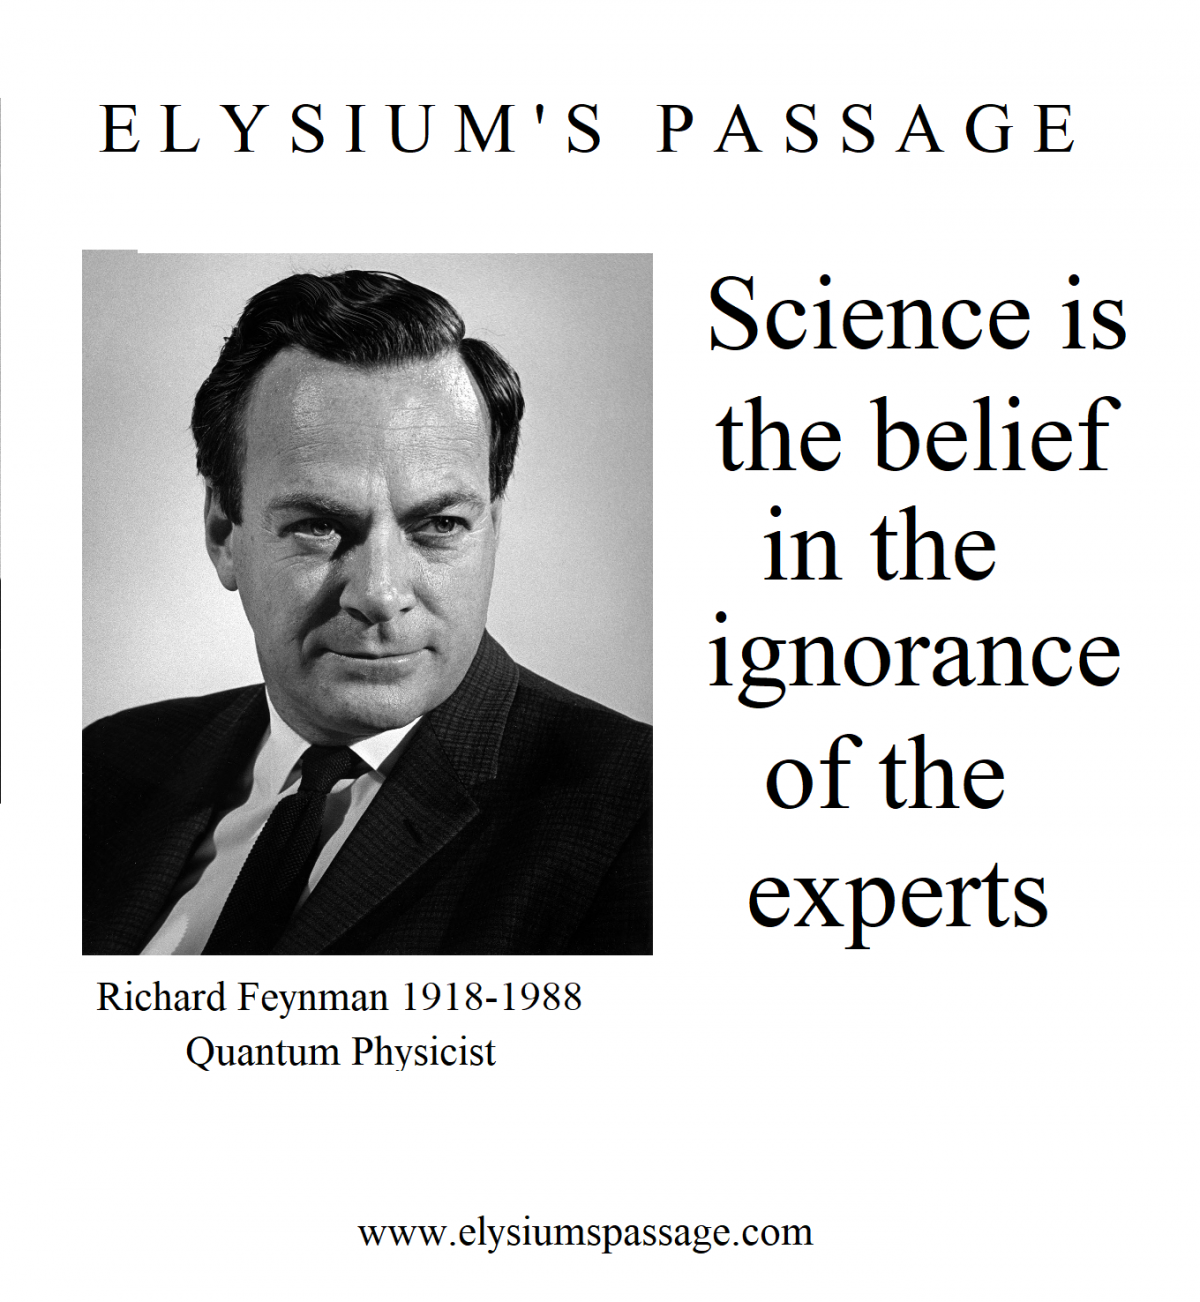 SCIENCE AND THE EXPERTS